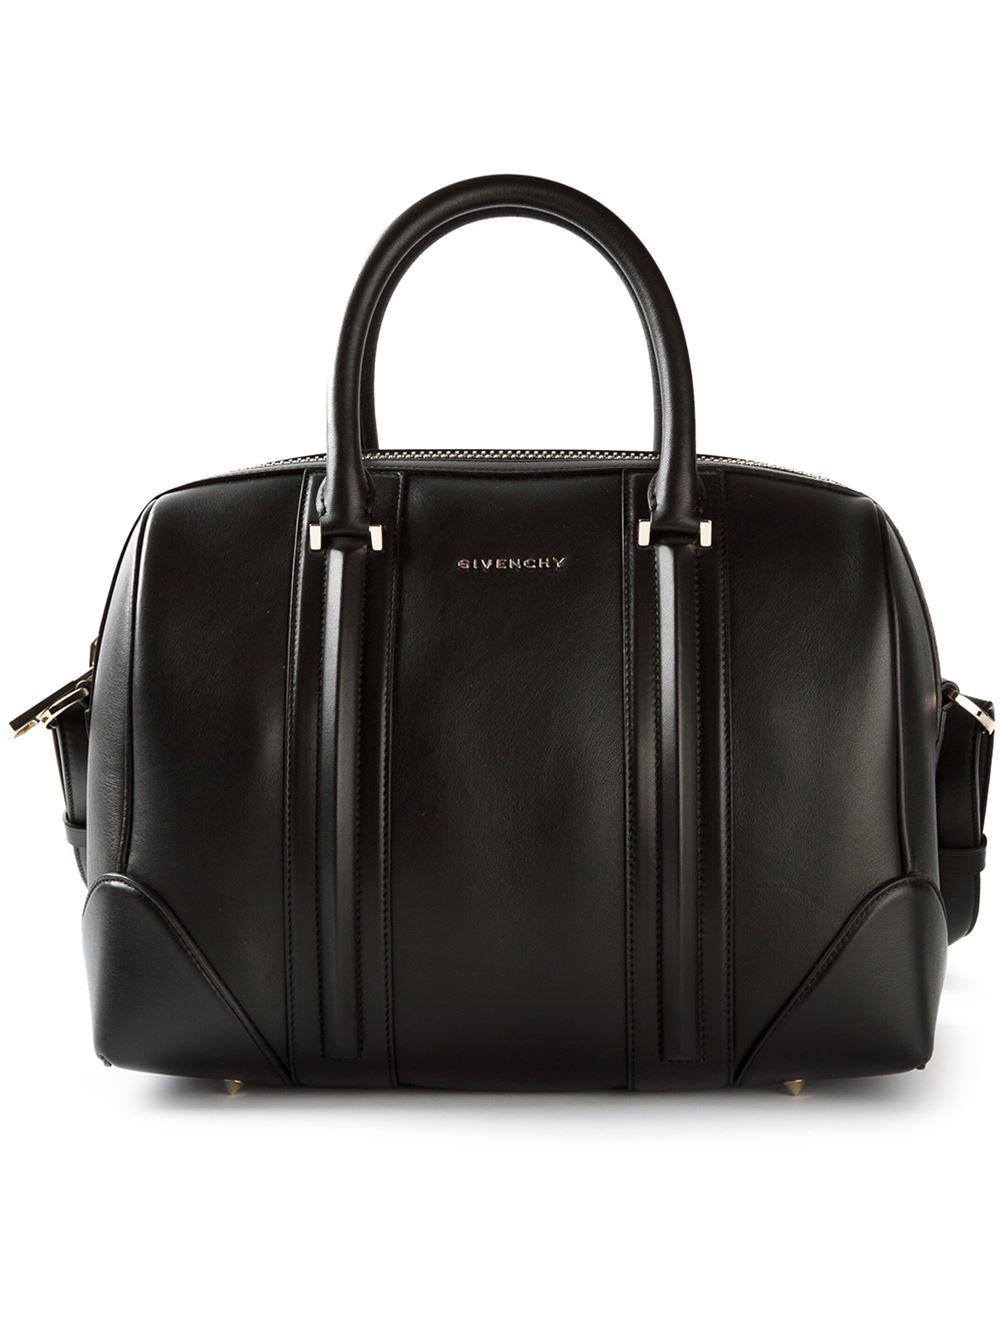 Givenchy small 'lucrezia' tote